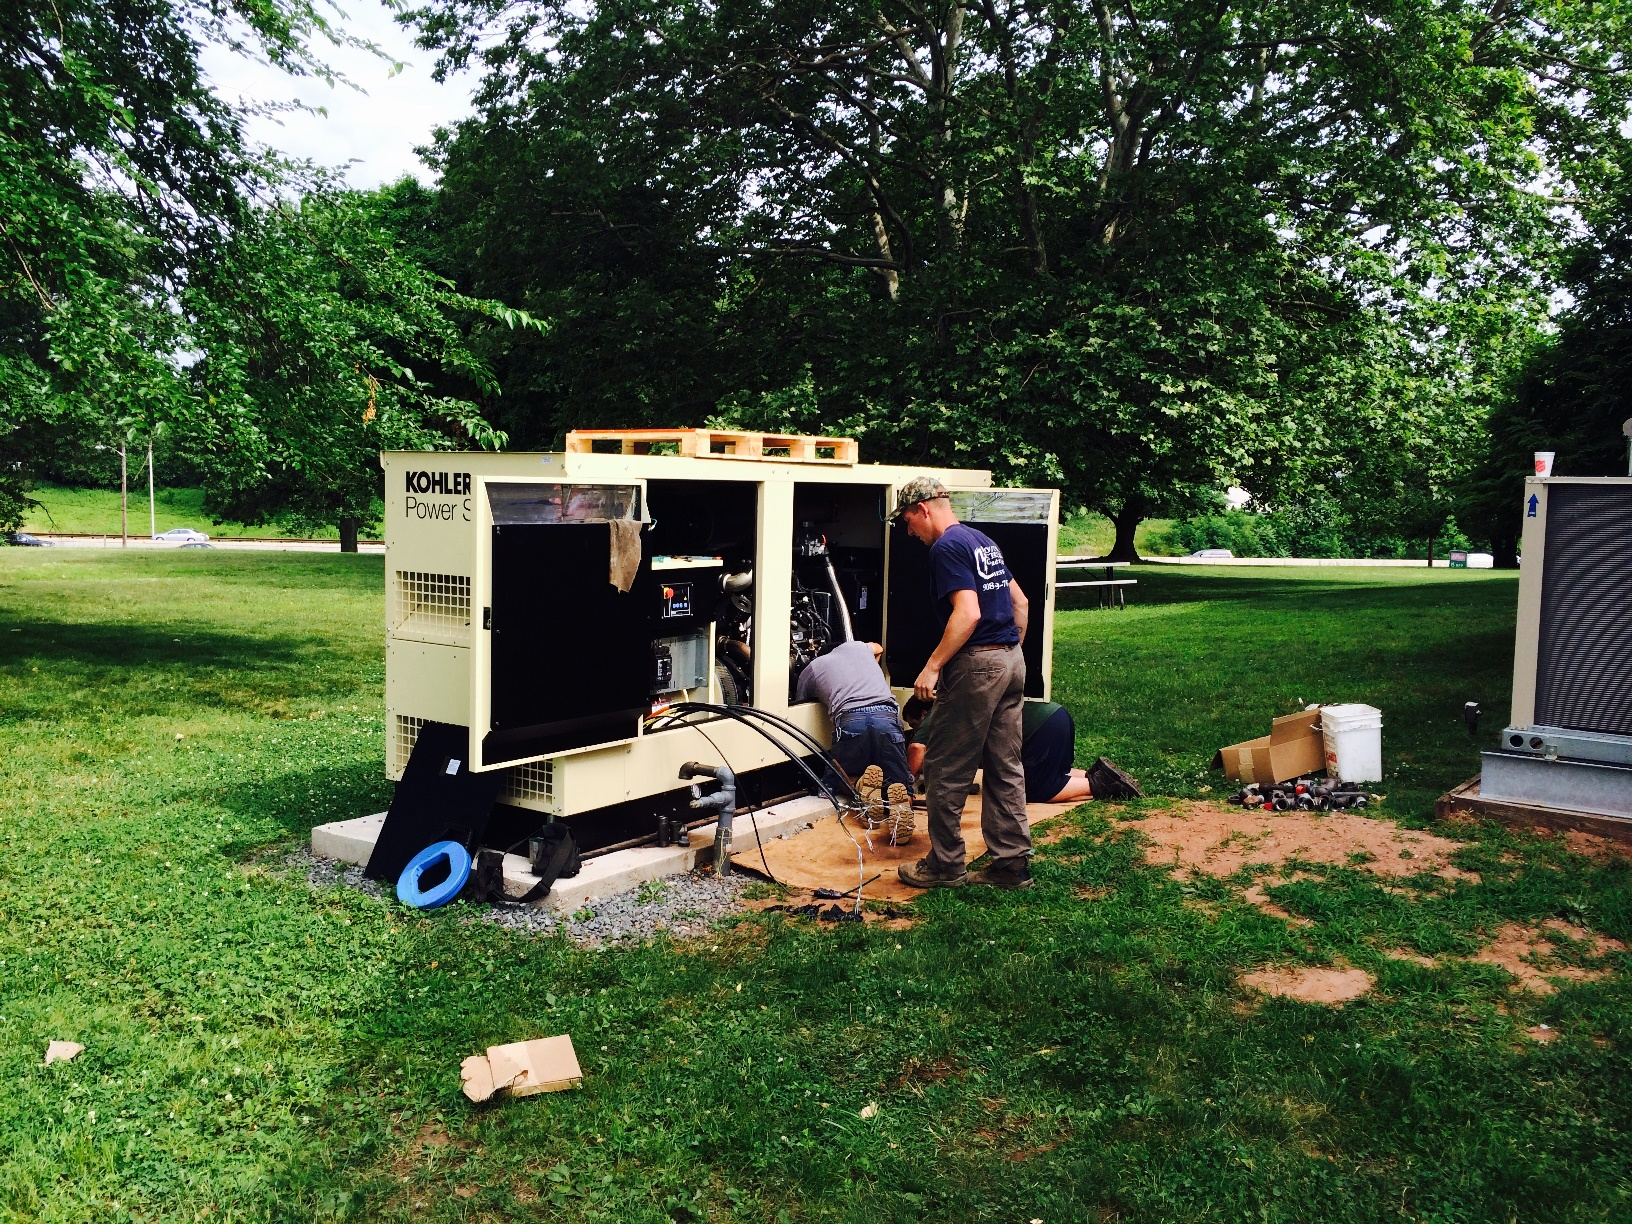 125kw Kohler Commercial Generator - Union, NJ